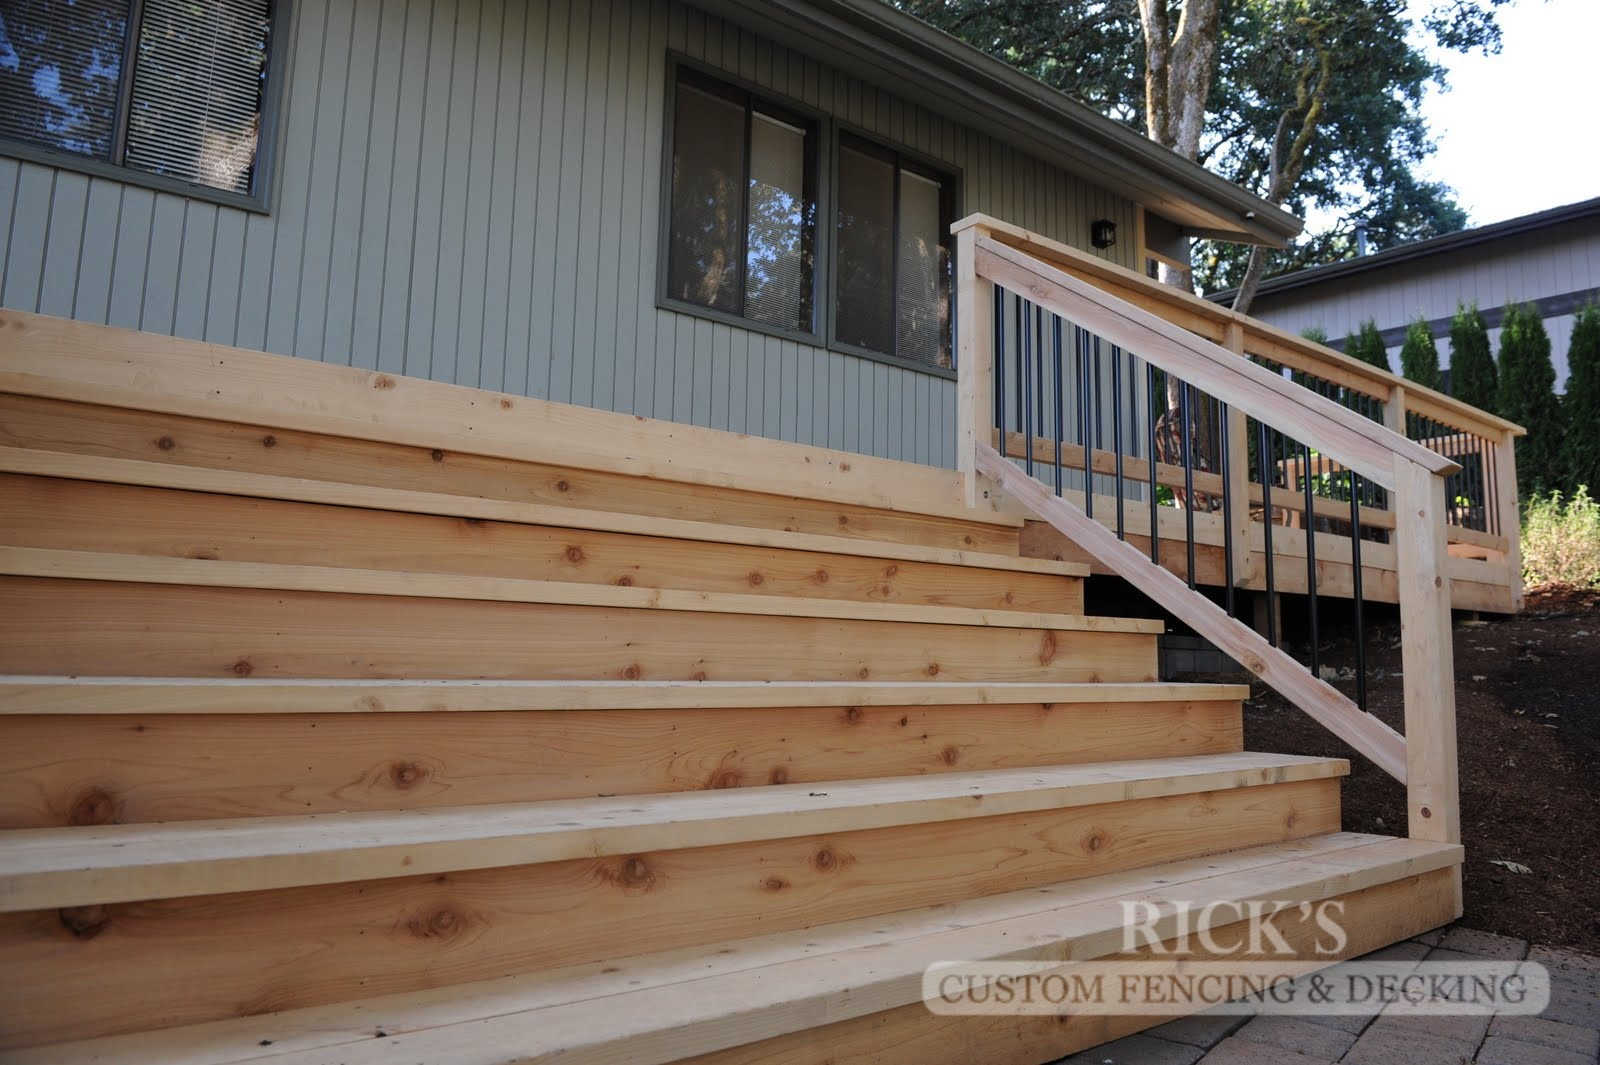 1031 - Port Orford Cedar Decking with Handrail